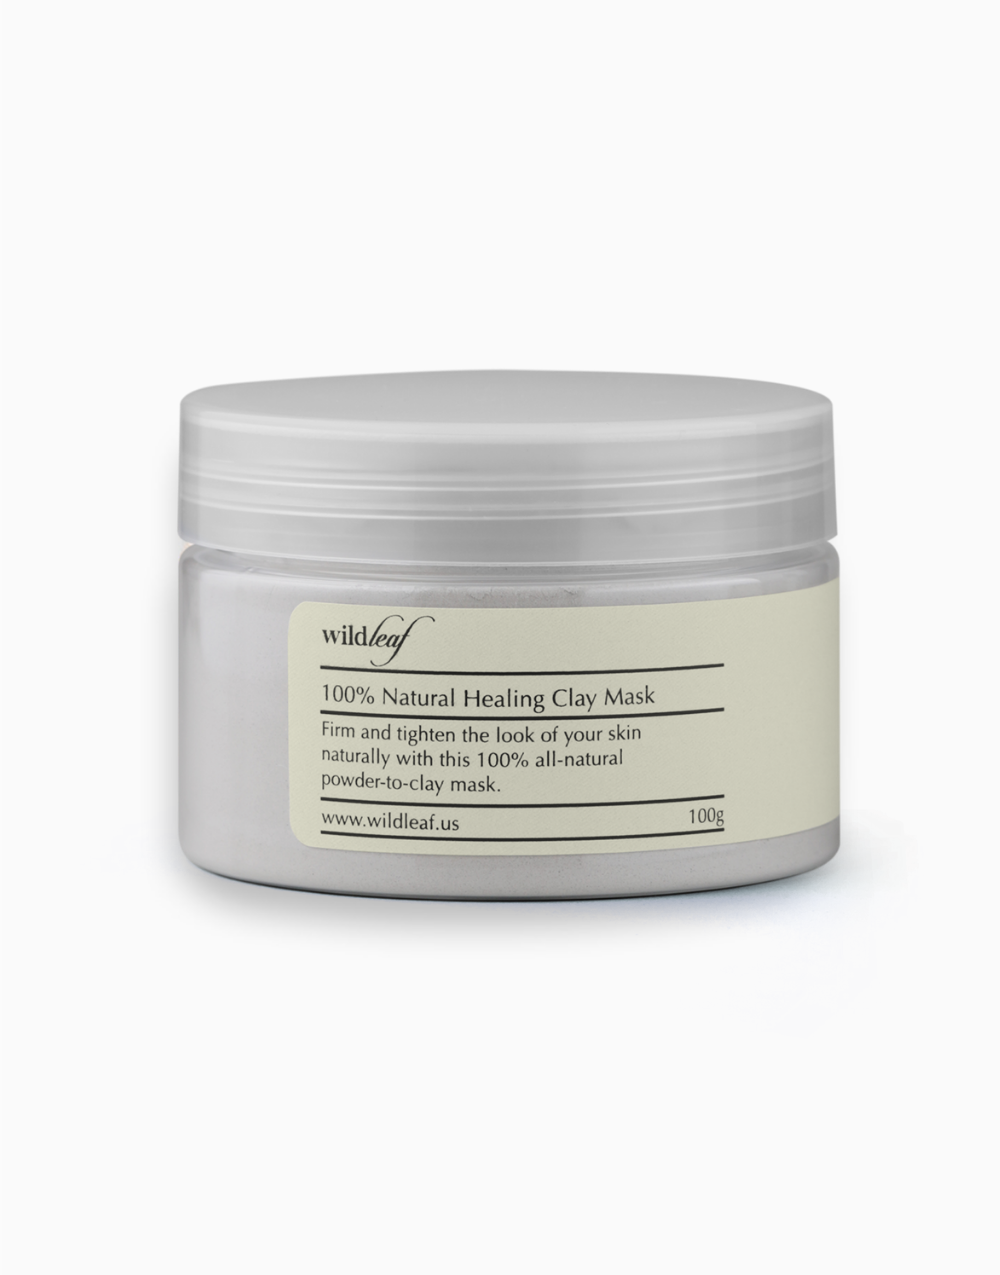 100% Natural Healing Clay Mask by Wildleaf